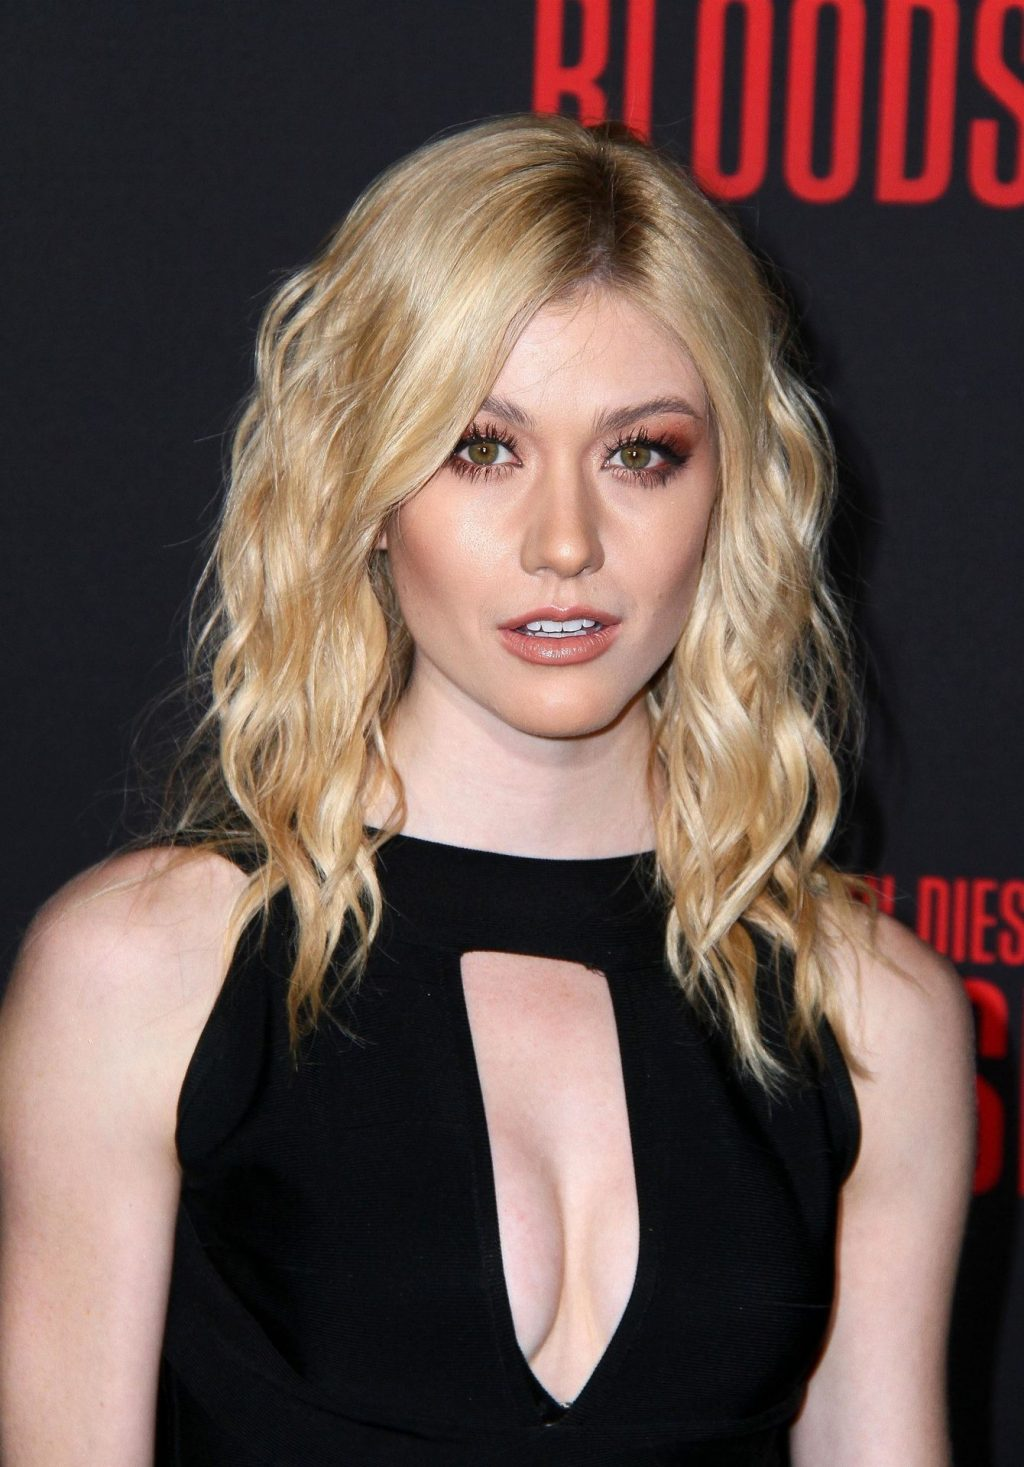 Katherine McNamara Shows Her Cleavage and Legs at the Bloodshot Premiere (13 Photos)